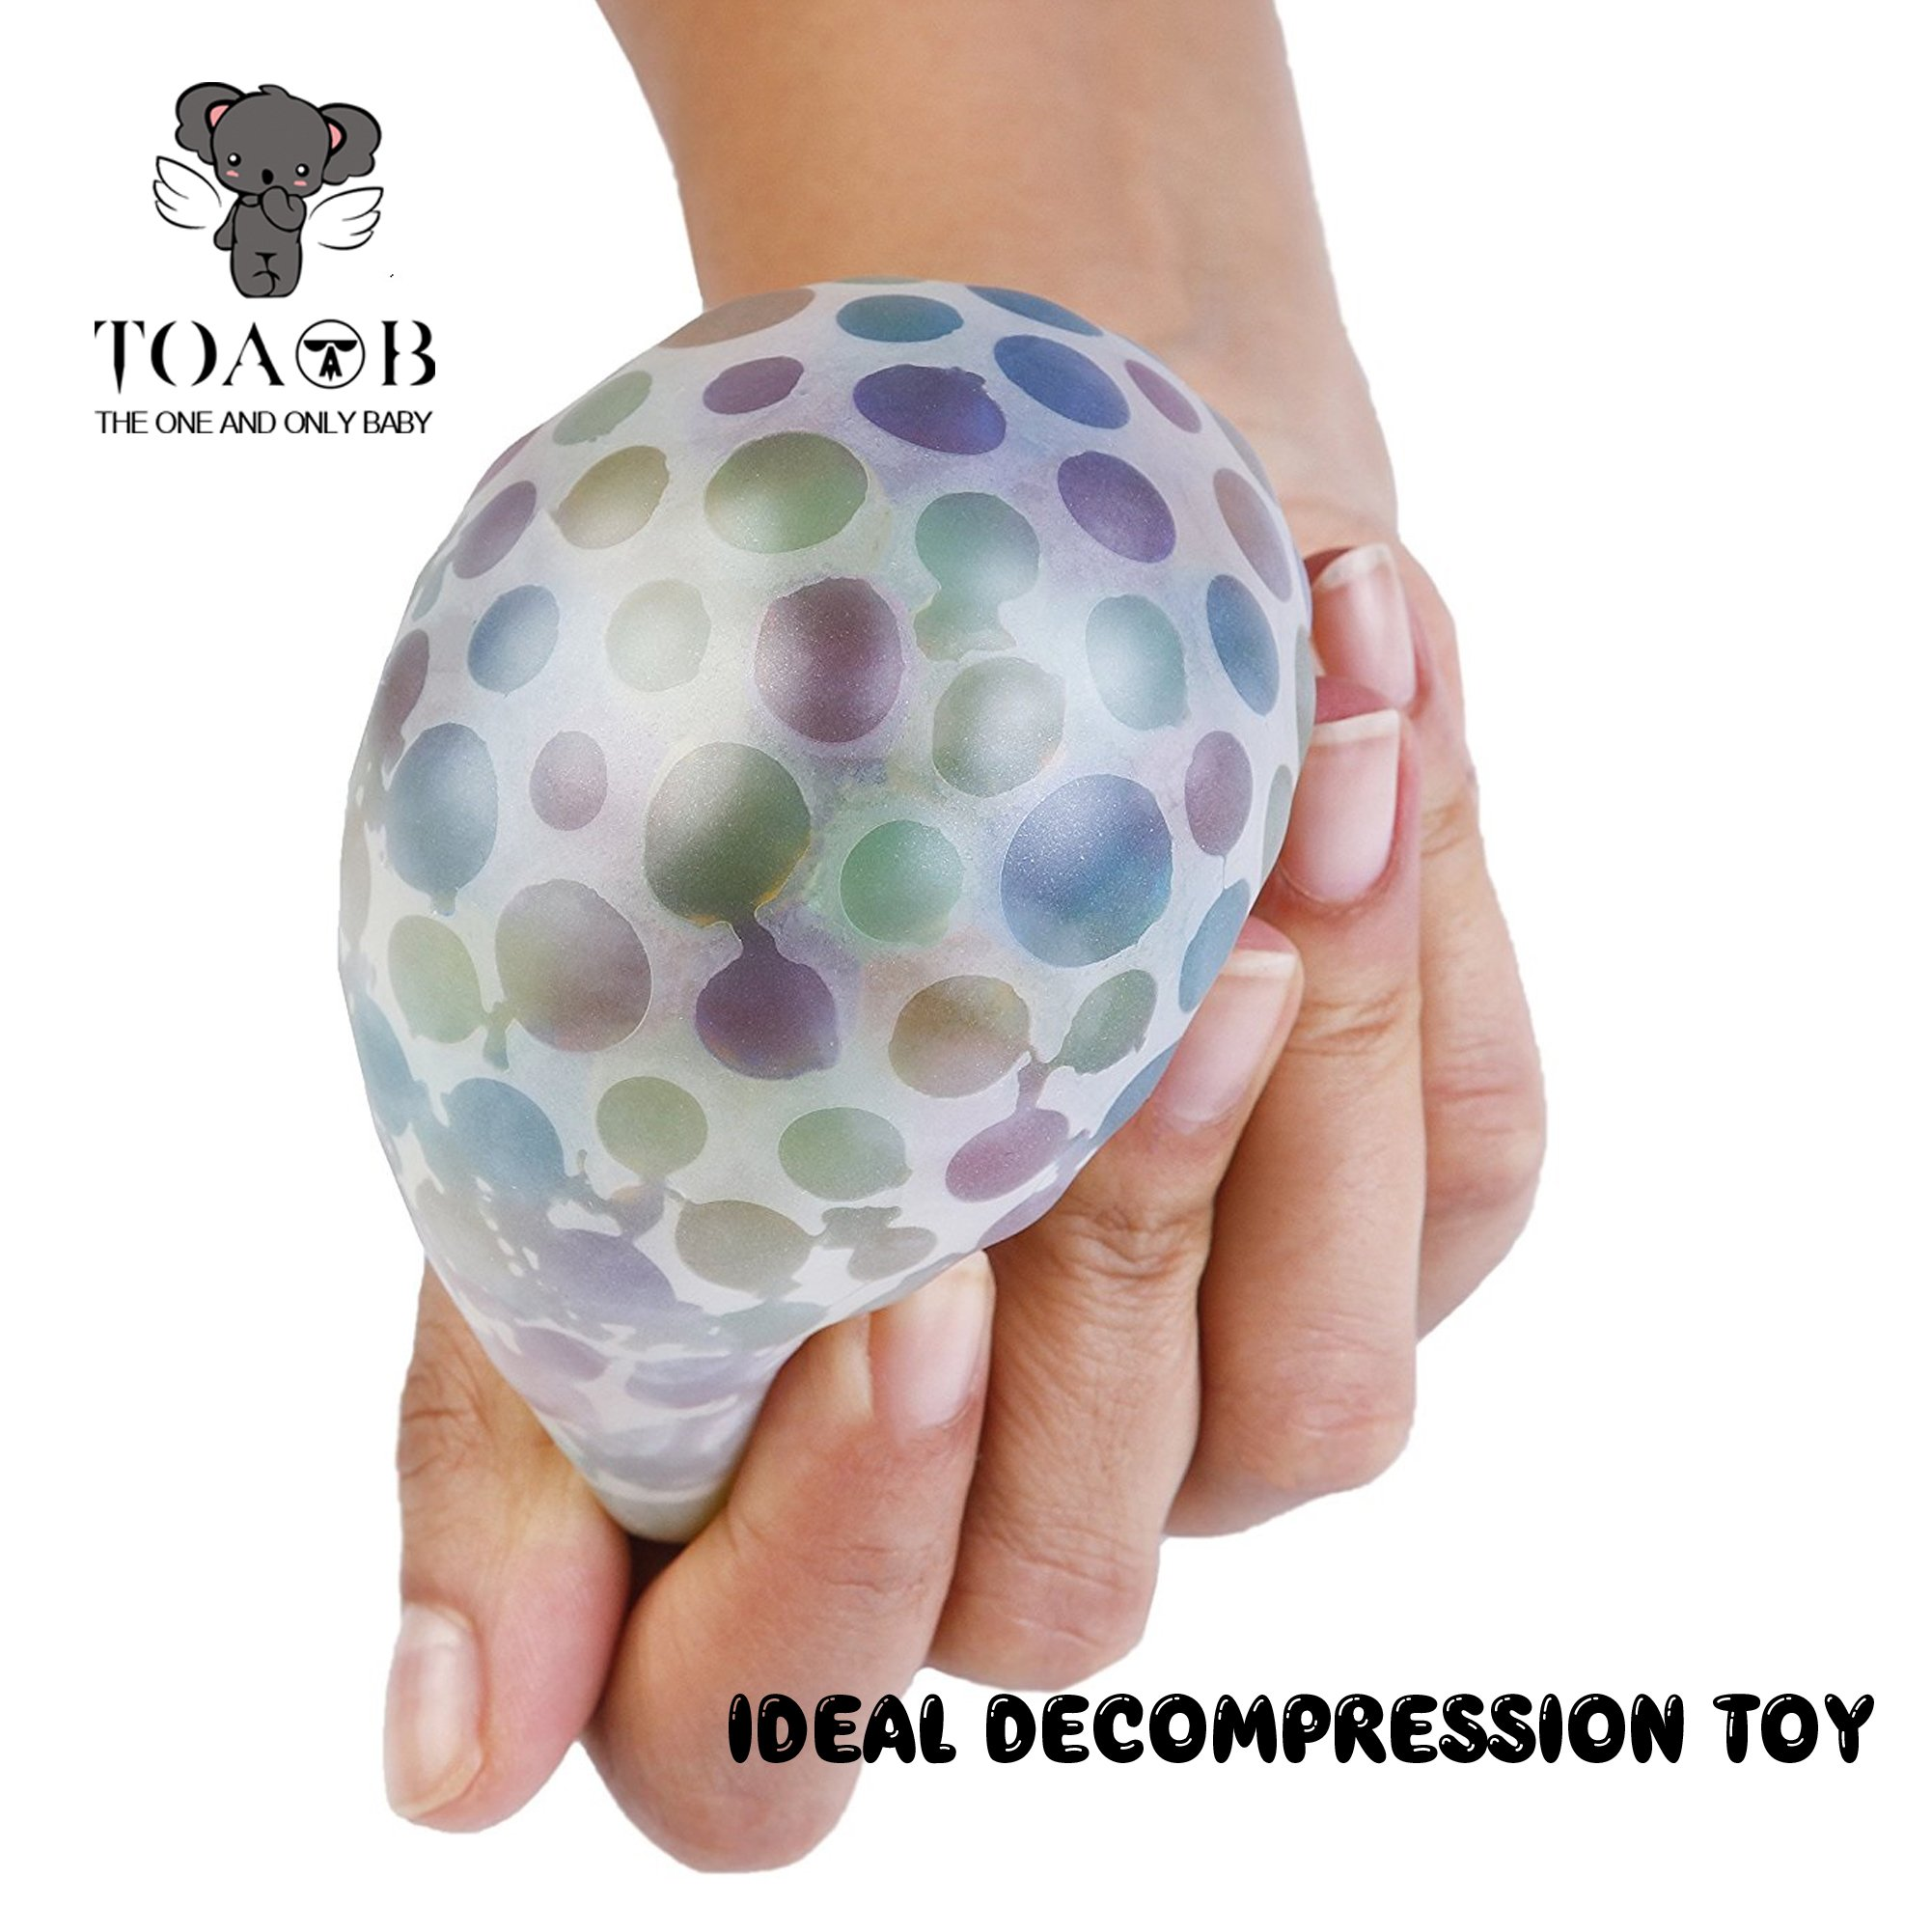 TOAOB 50000 Small water beads 10 Balloons Biodegradable Non Toxic Bottle Pack Water Beads Kids Tactile Sensory Toys Vase Filler Wedding Centerpiece Home Decoration Plants